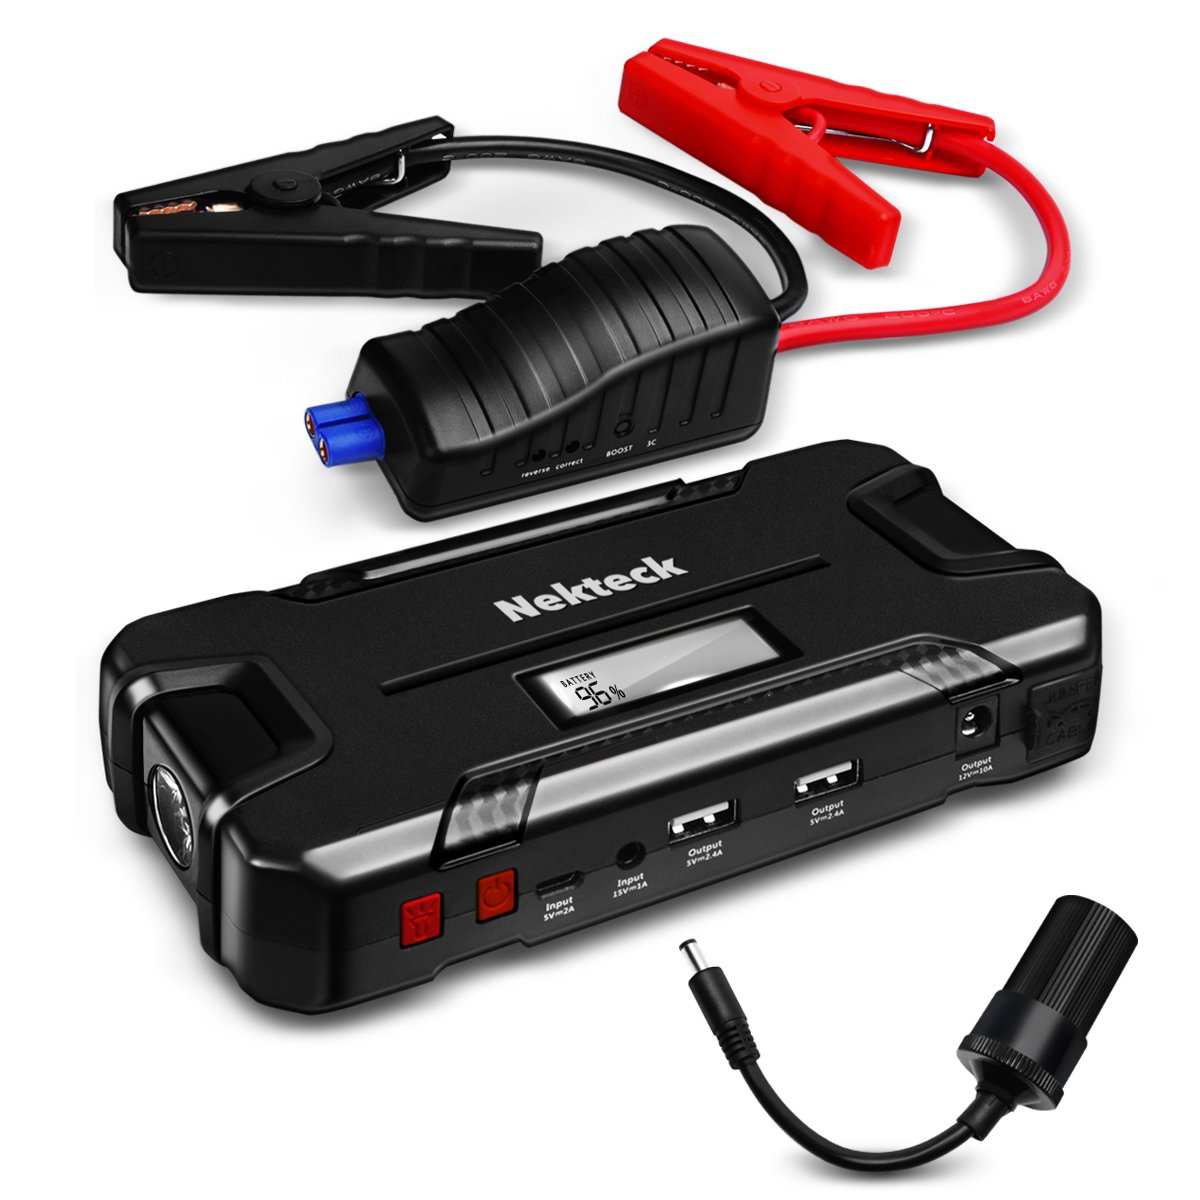 Nekteck Car Jump Starter Automotive Battery Booster And 12000mAh Portable External Battery Charger For